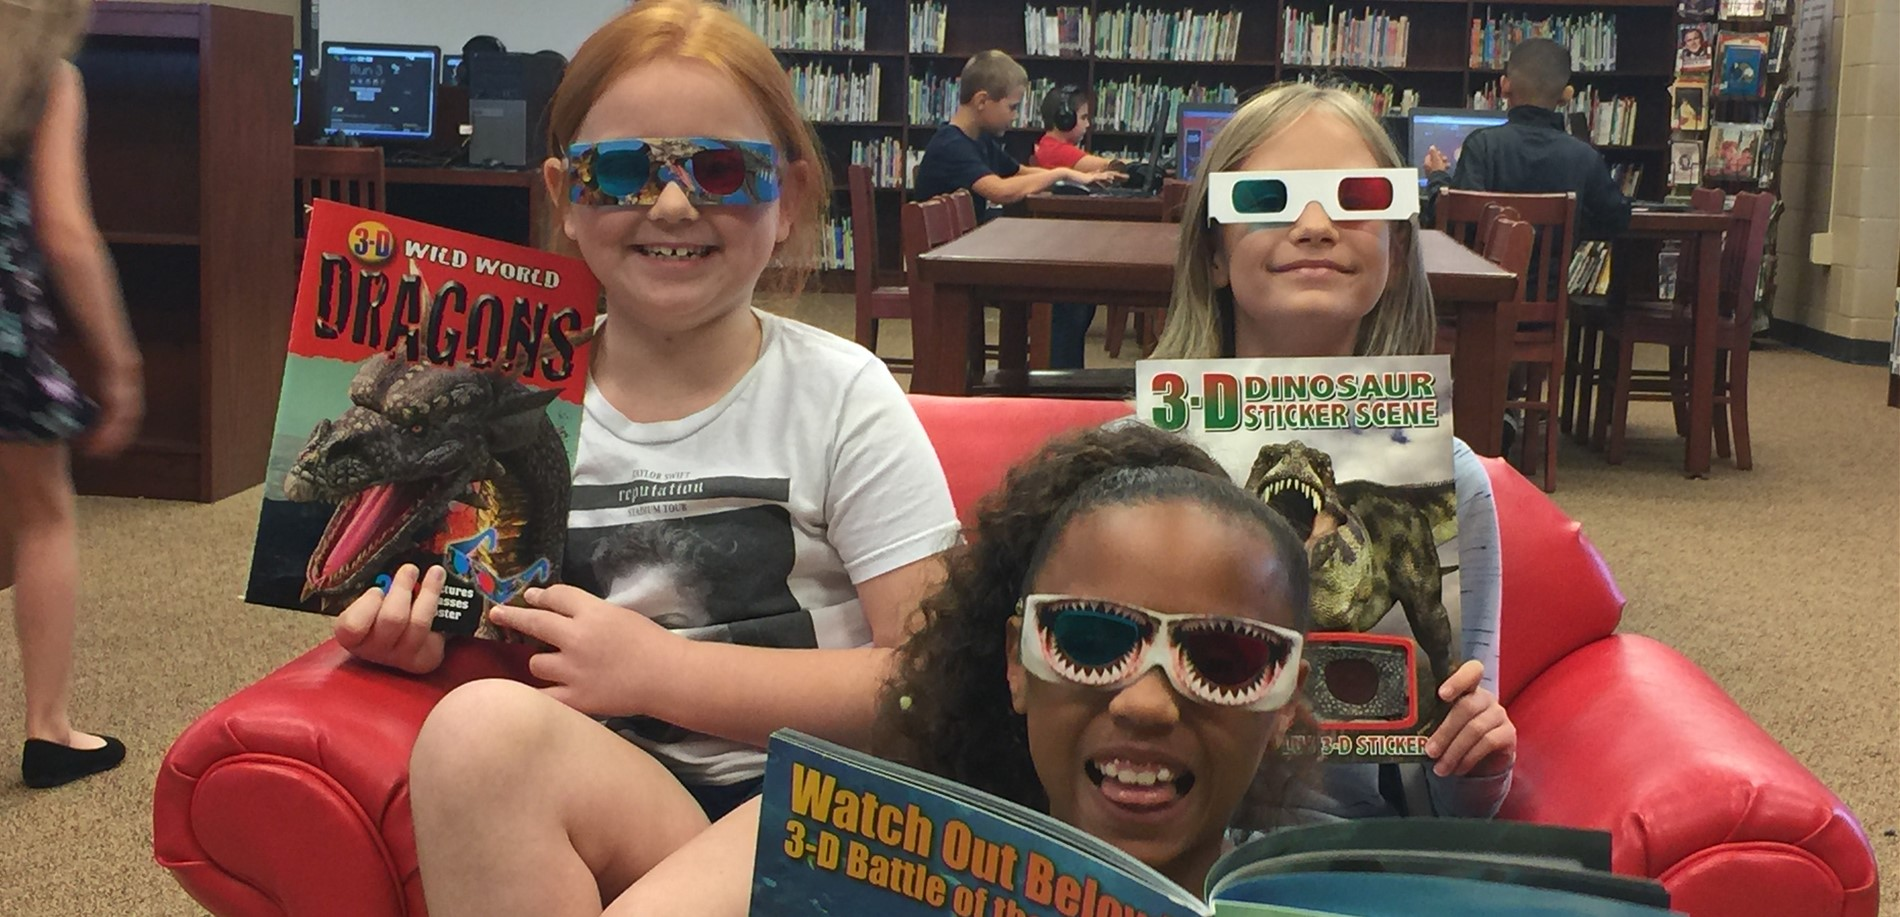 Students read 3-D books in the media center.